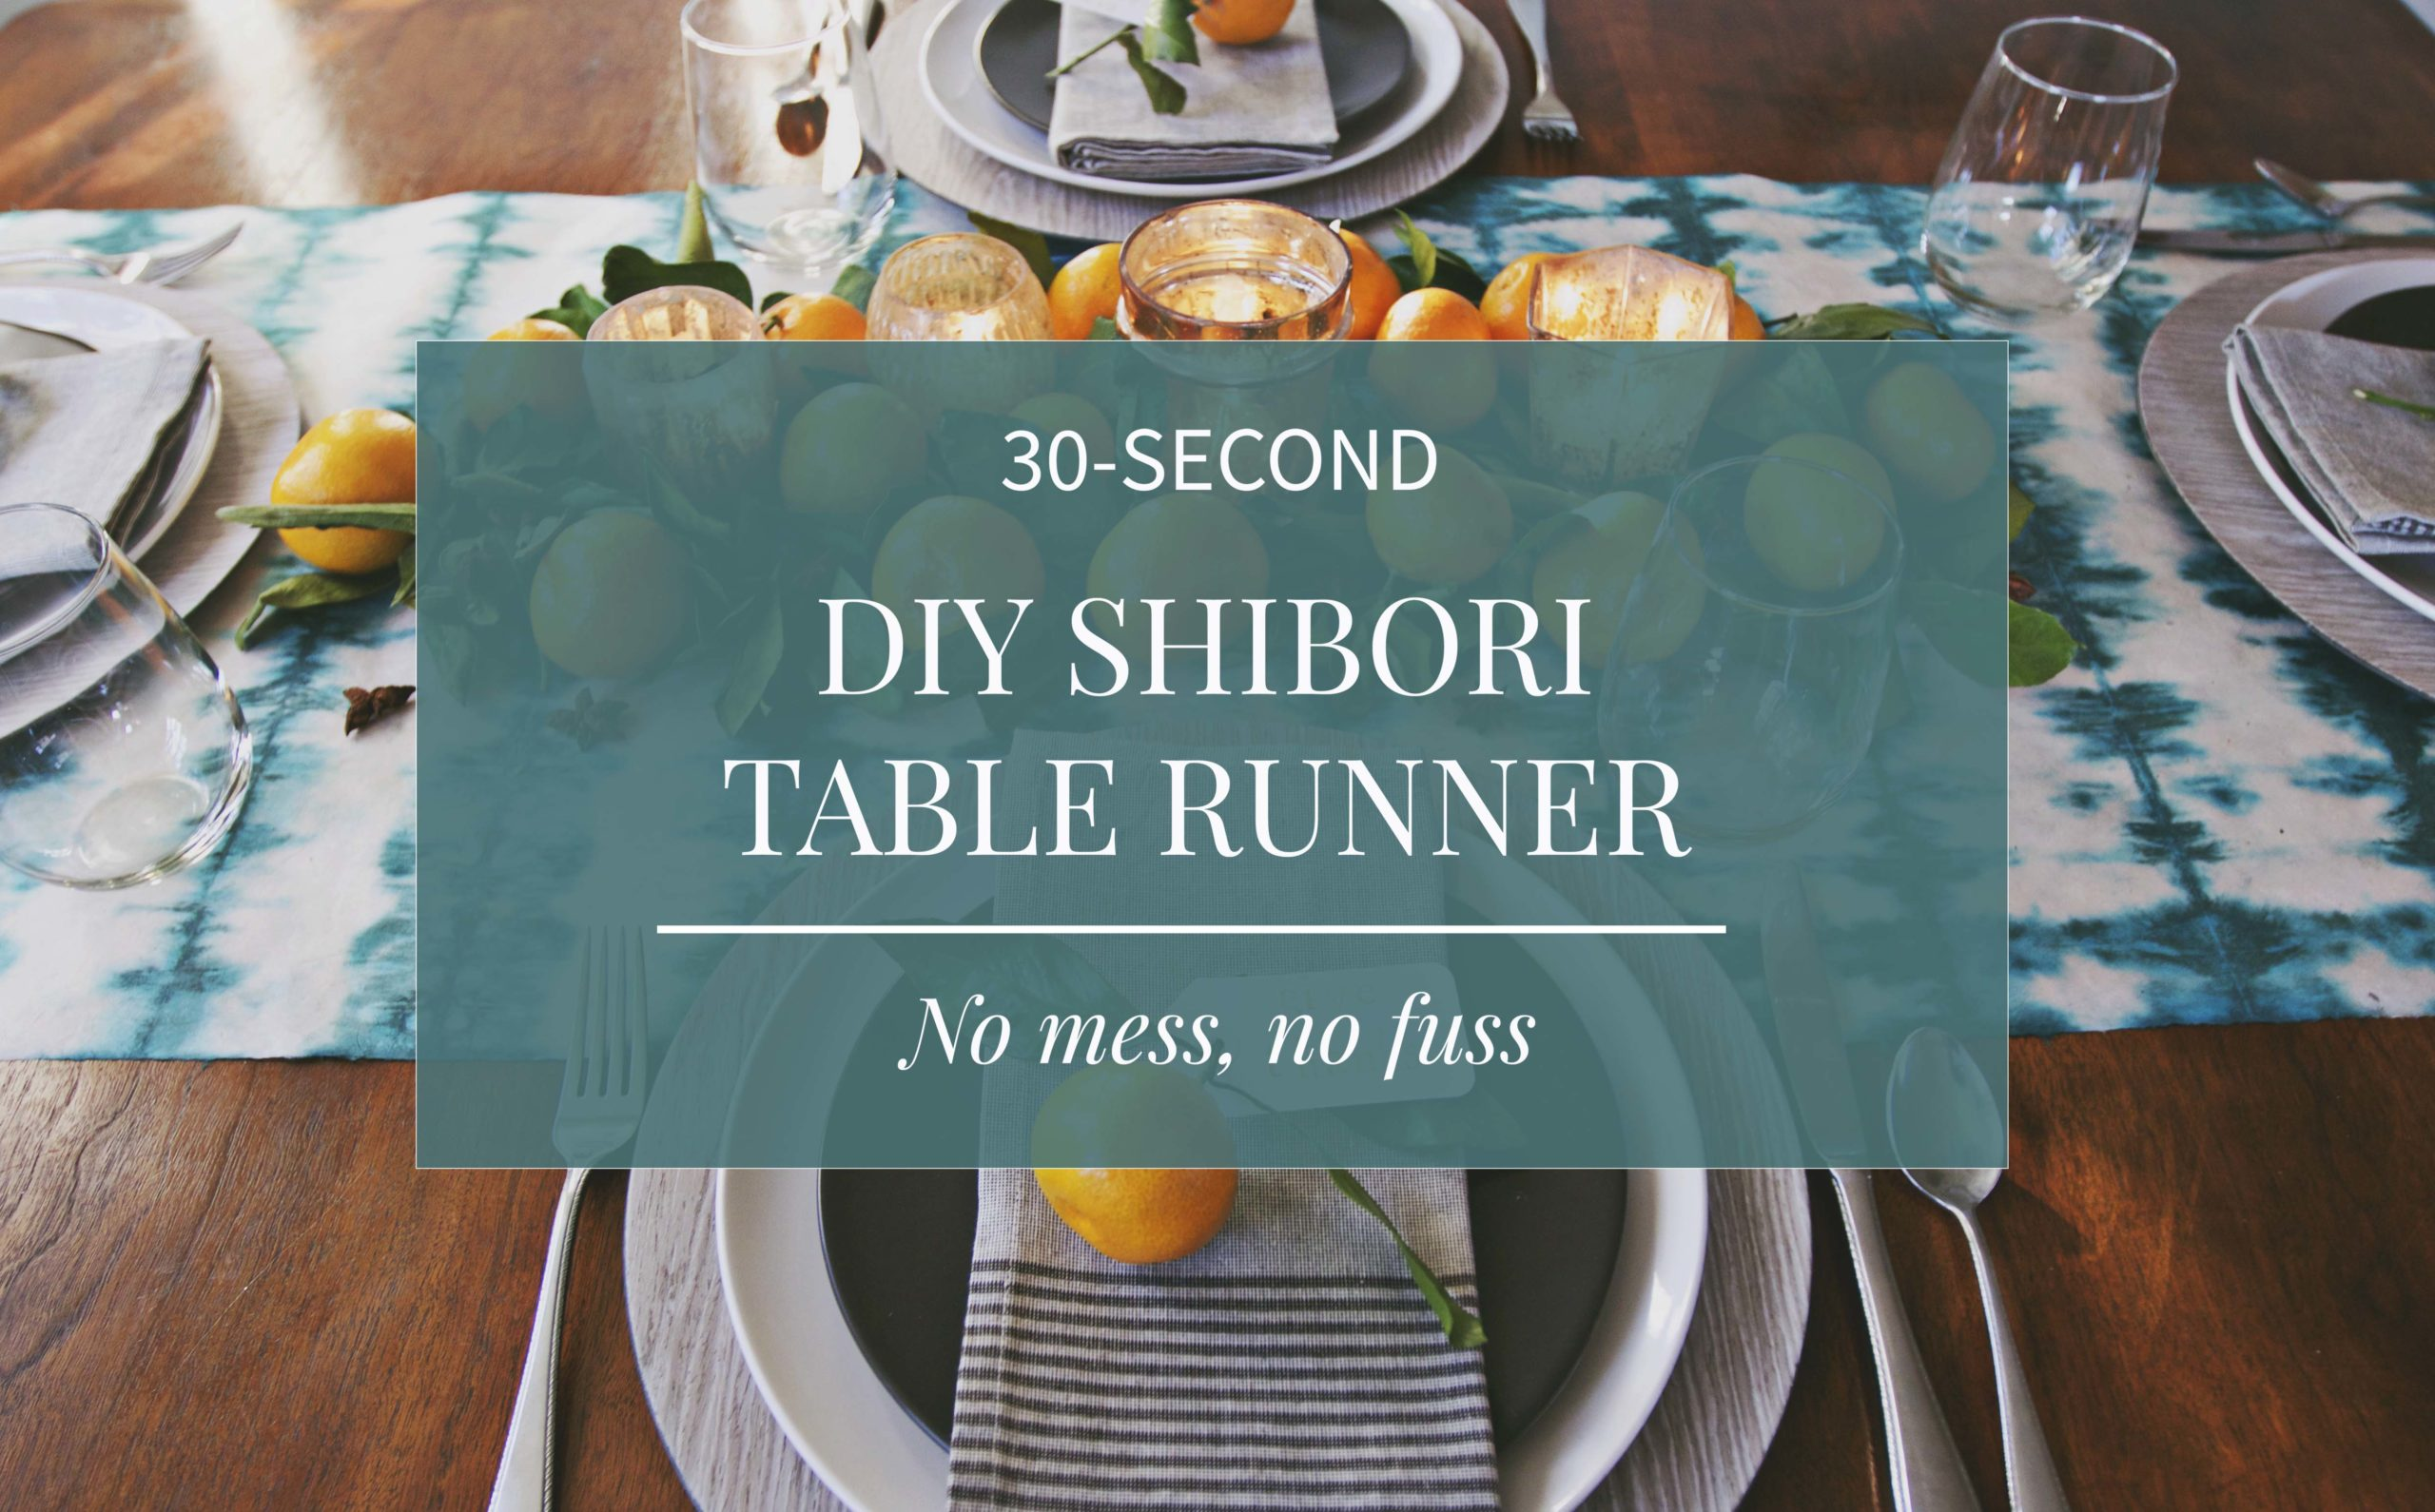 30-Second DIY Shibori Table Runner